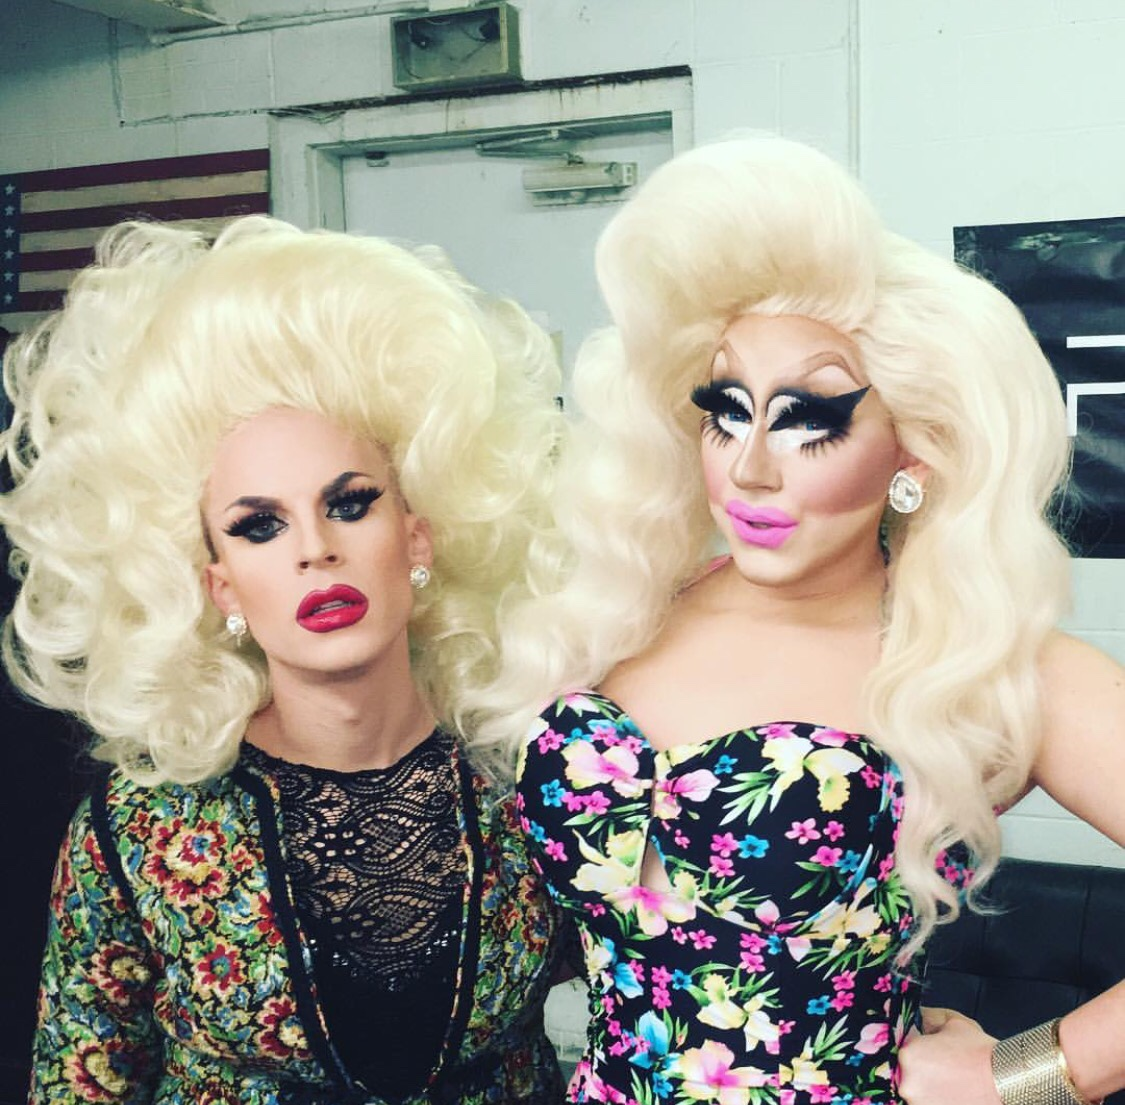 The Wholesome Yet Filthy Comedy of Katya and Trixie